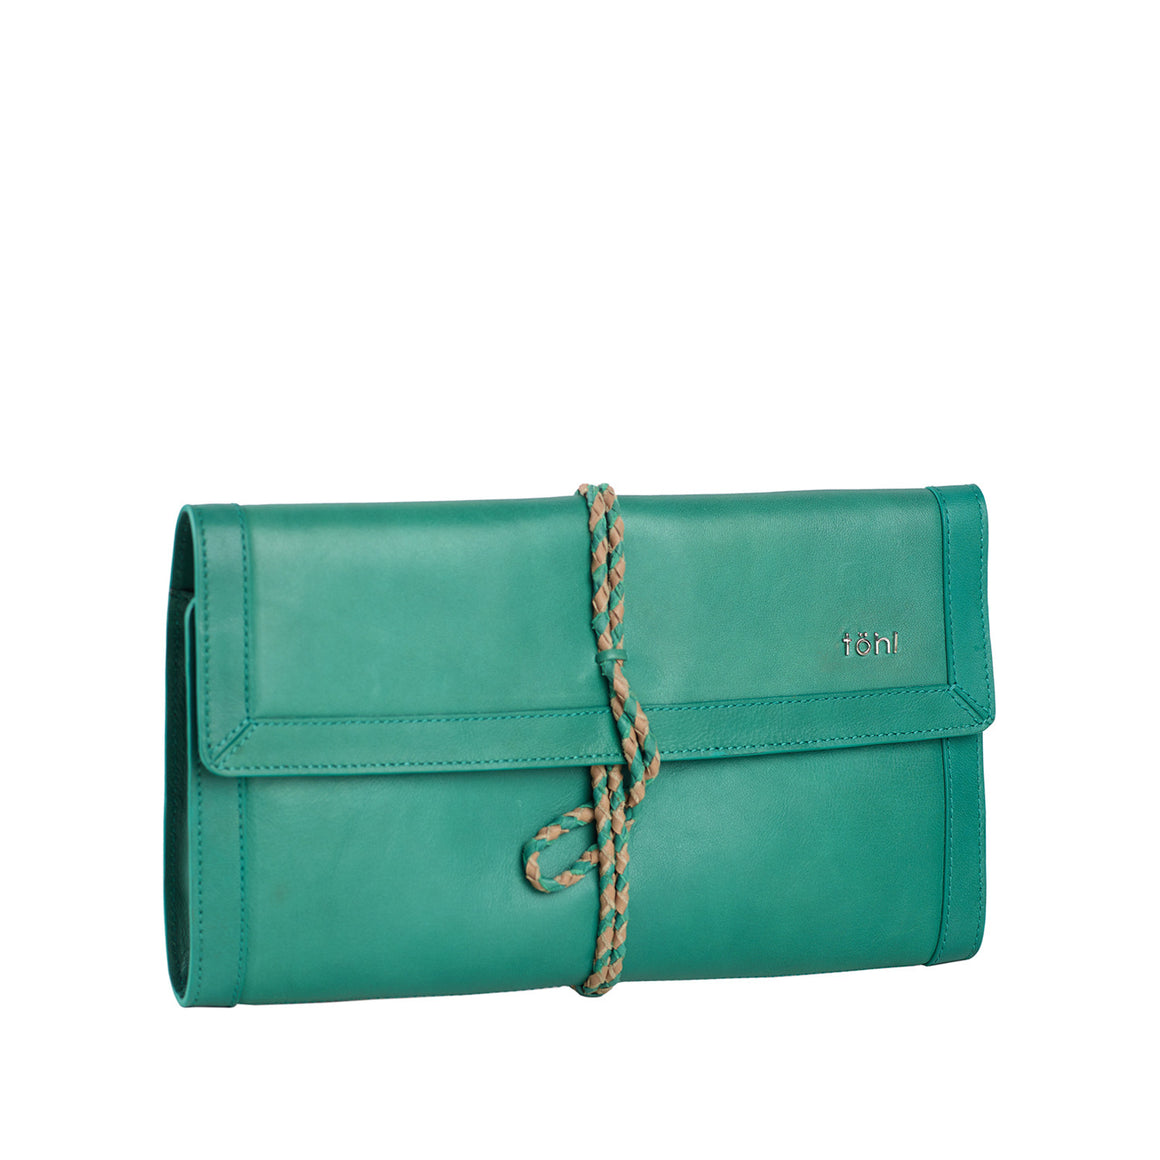 CH 0006 - TOHL CAMILLE WOMEN'S ROLLUP CLUTCH - TURKIS